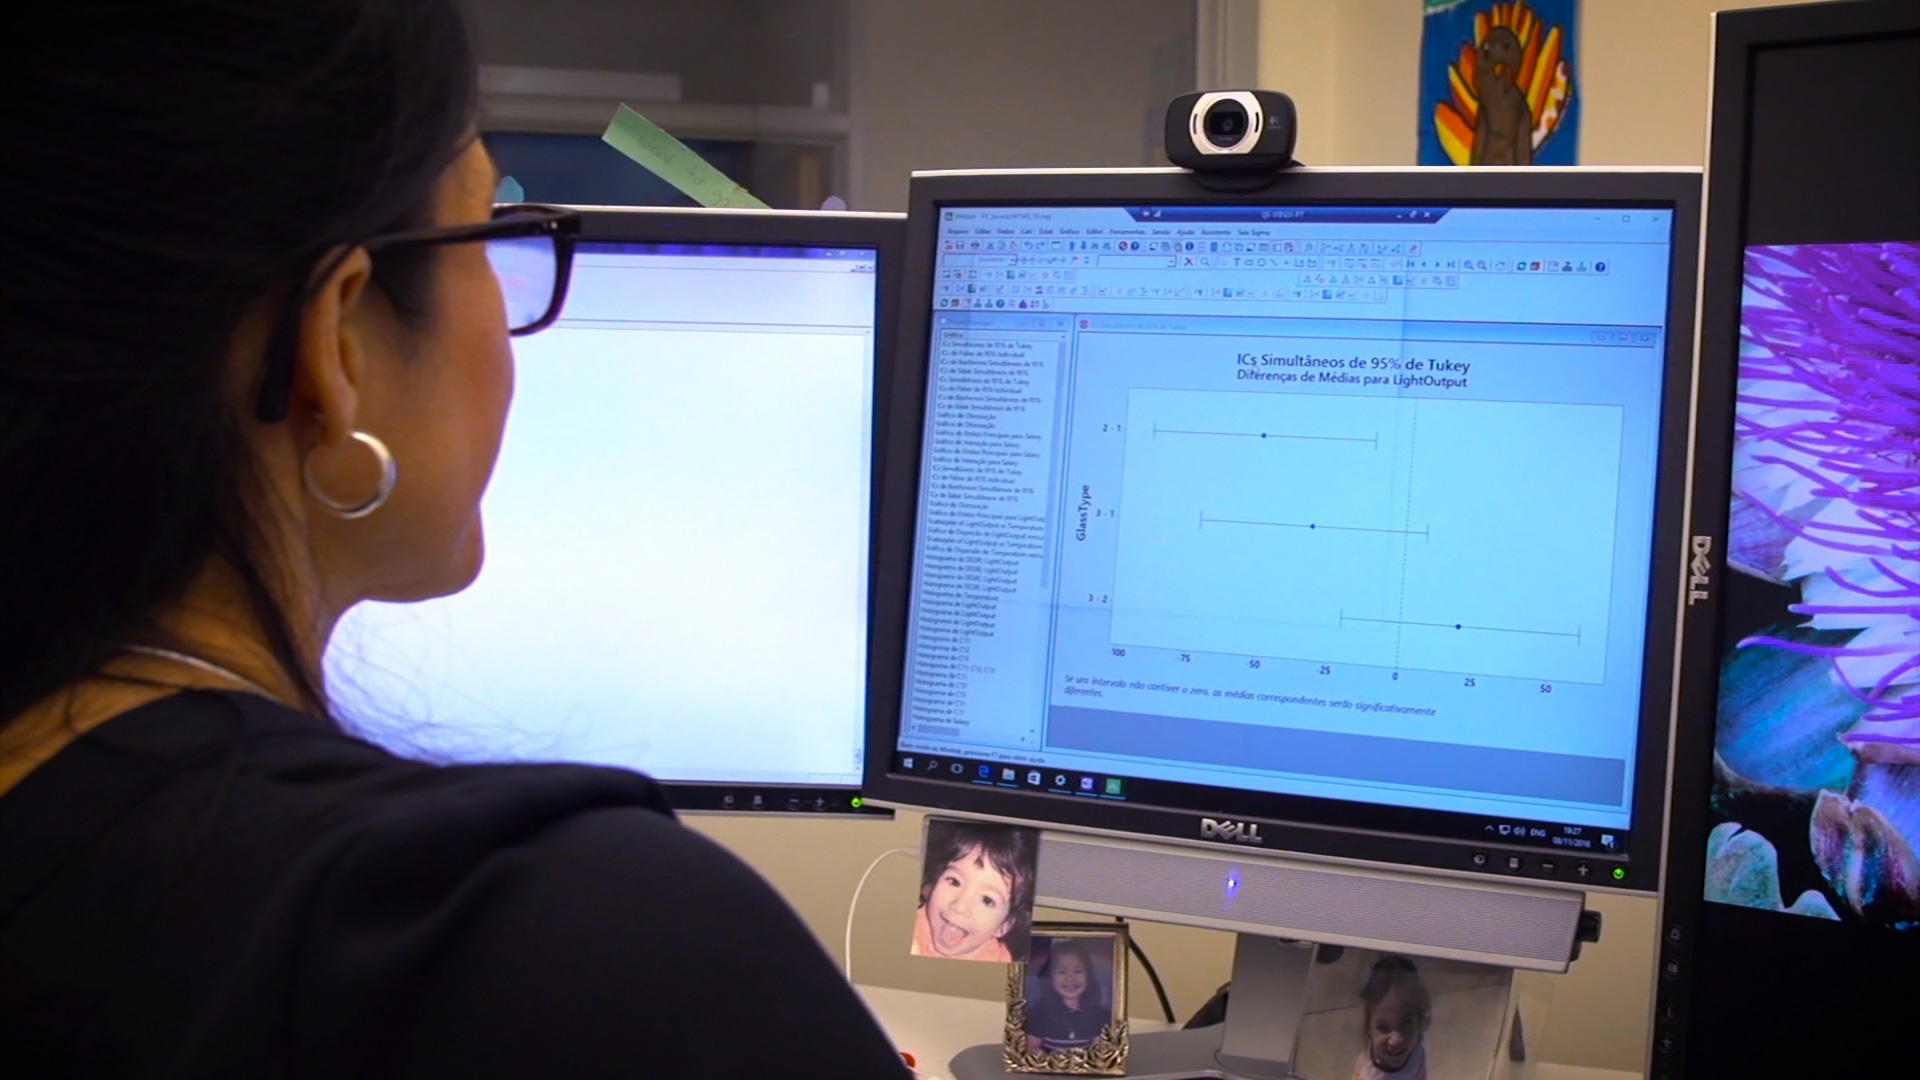 woman looking at technical software on computer screen